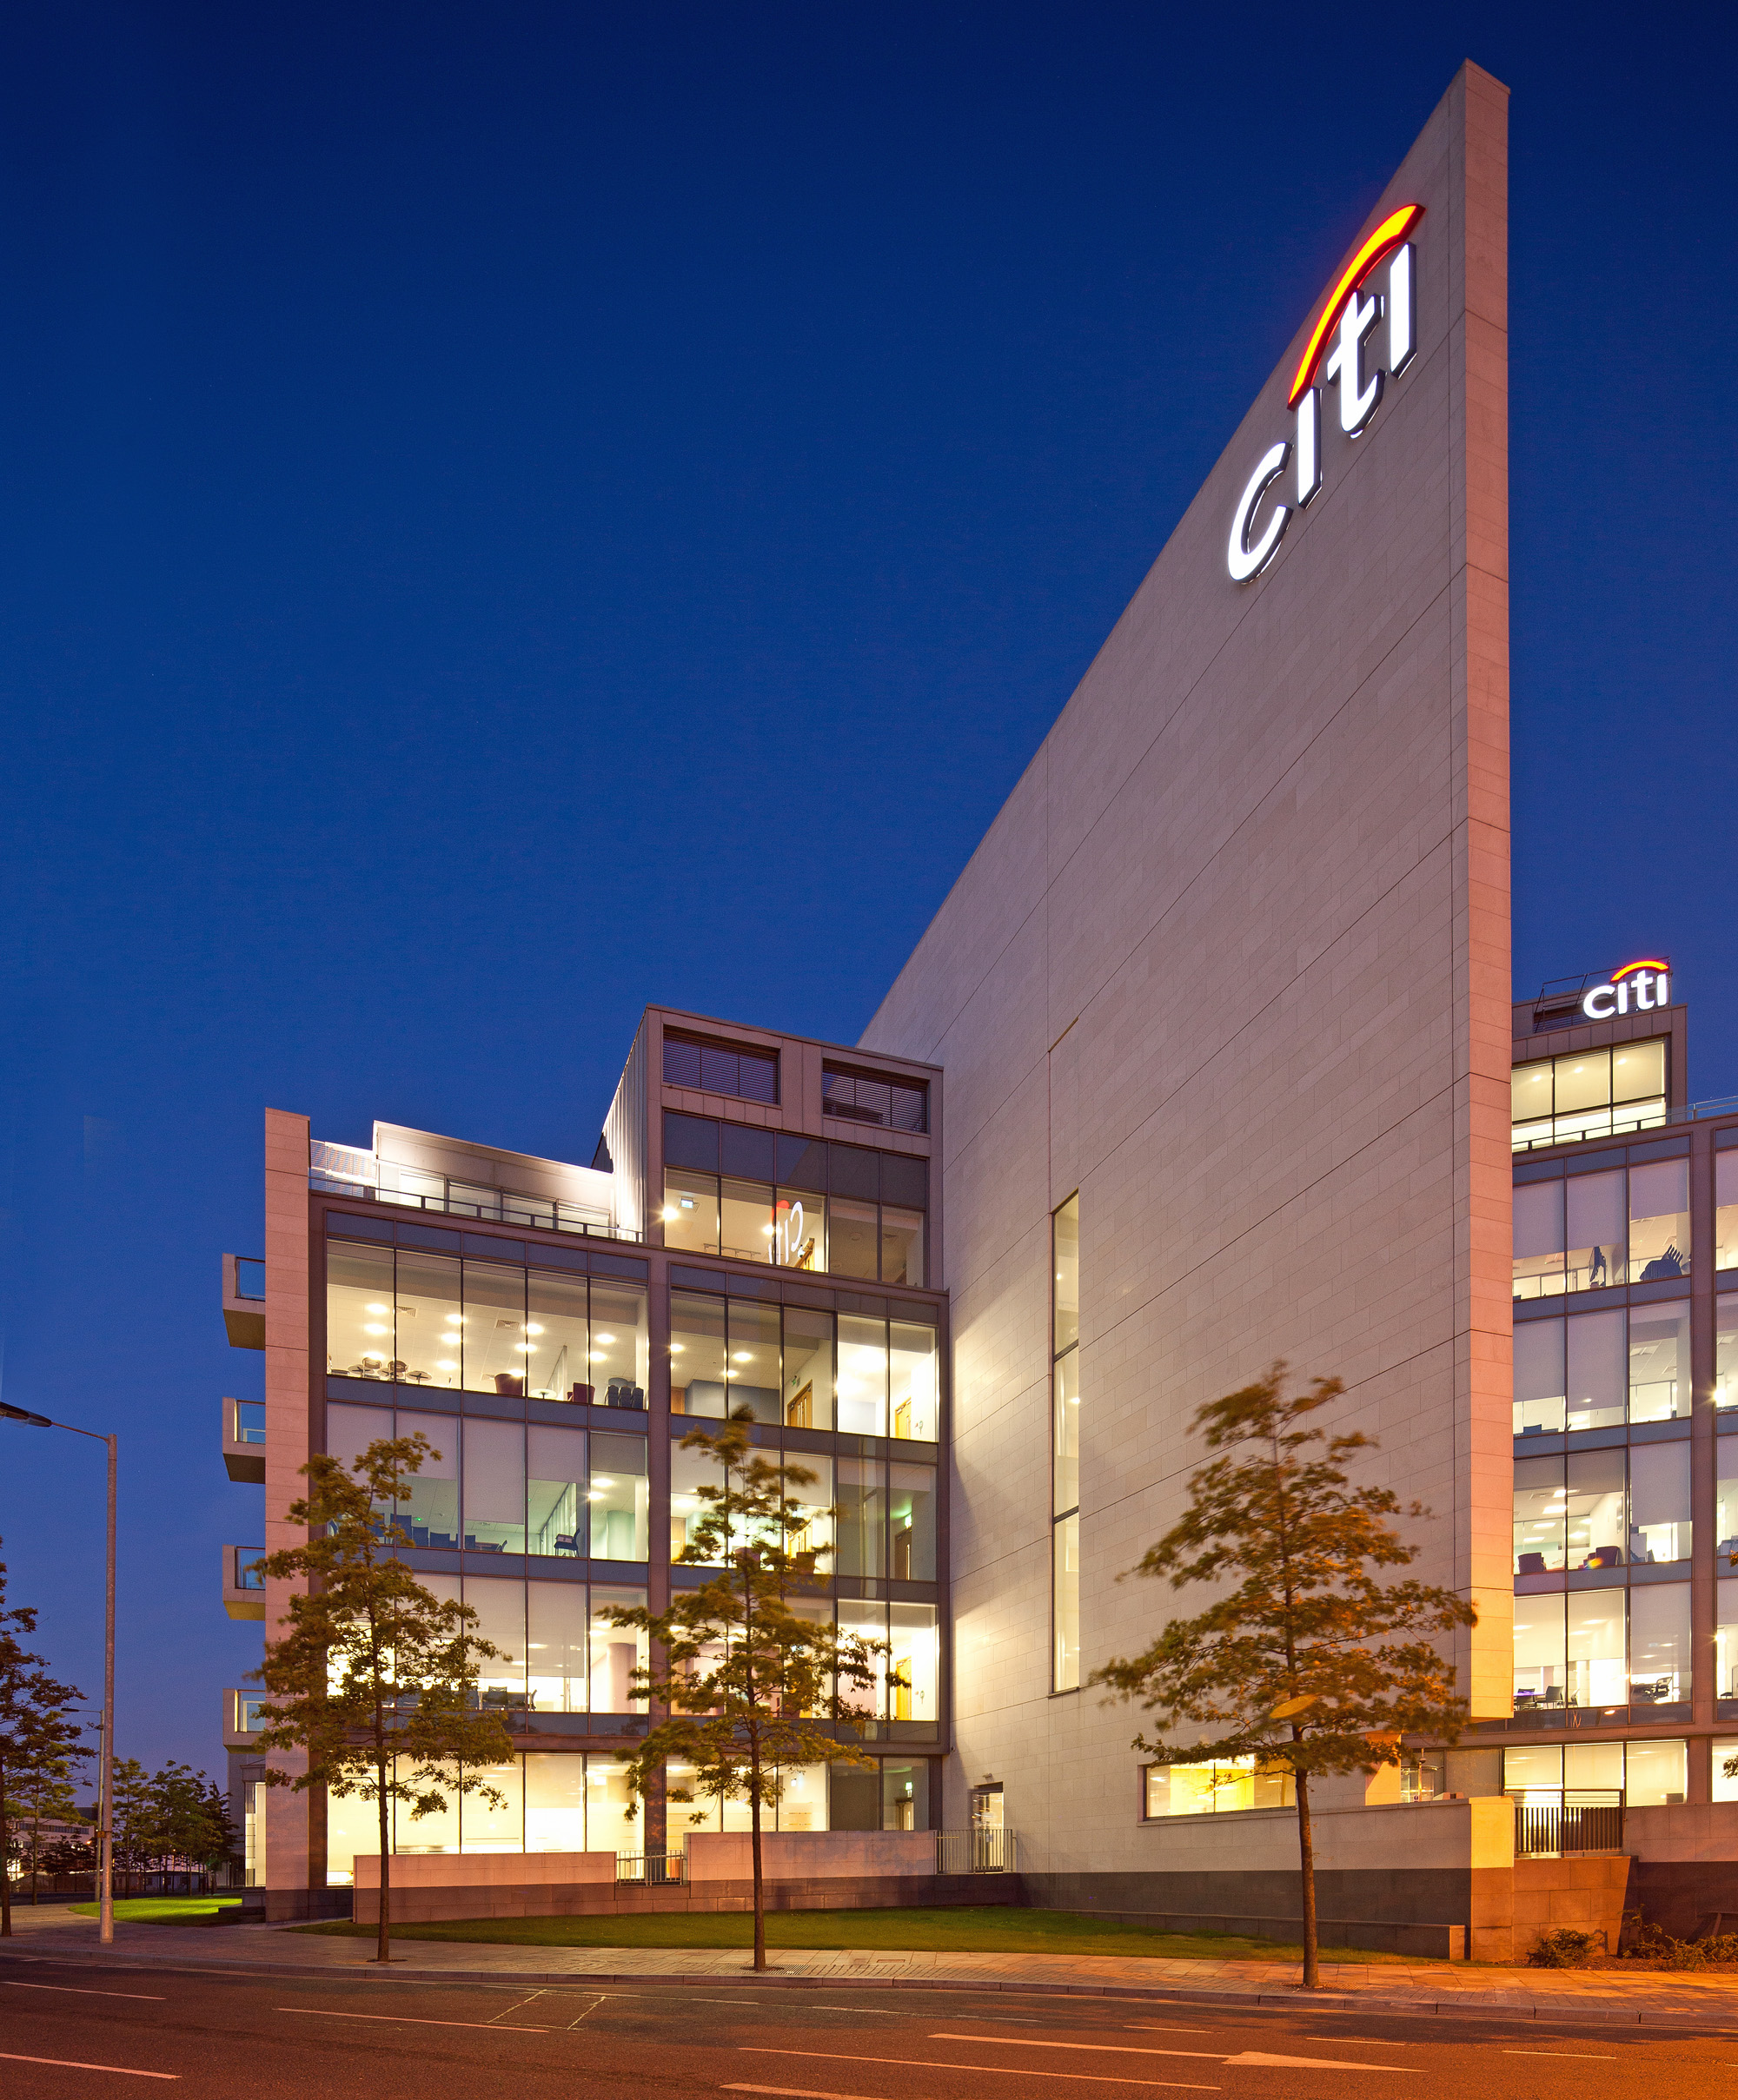 The building comprises three accommodation blocks, central feature courtyard and underground car parking, and has been let to Citi since the building was completed in 2009.